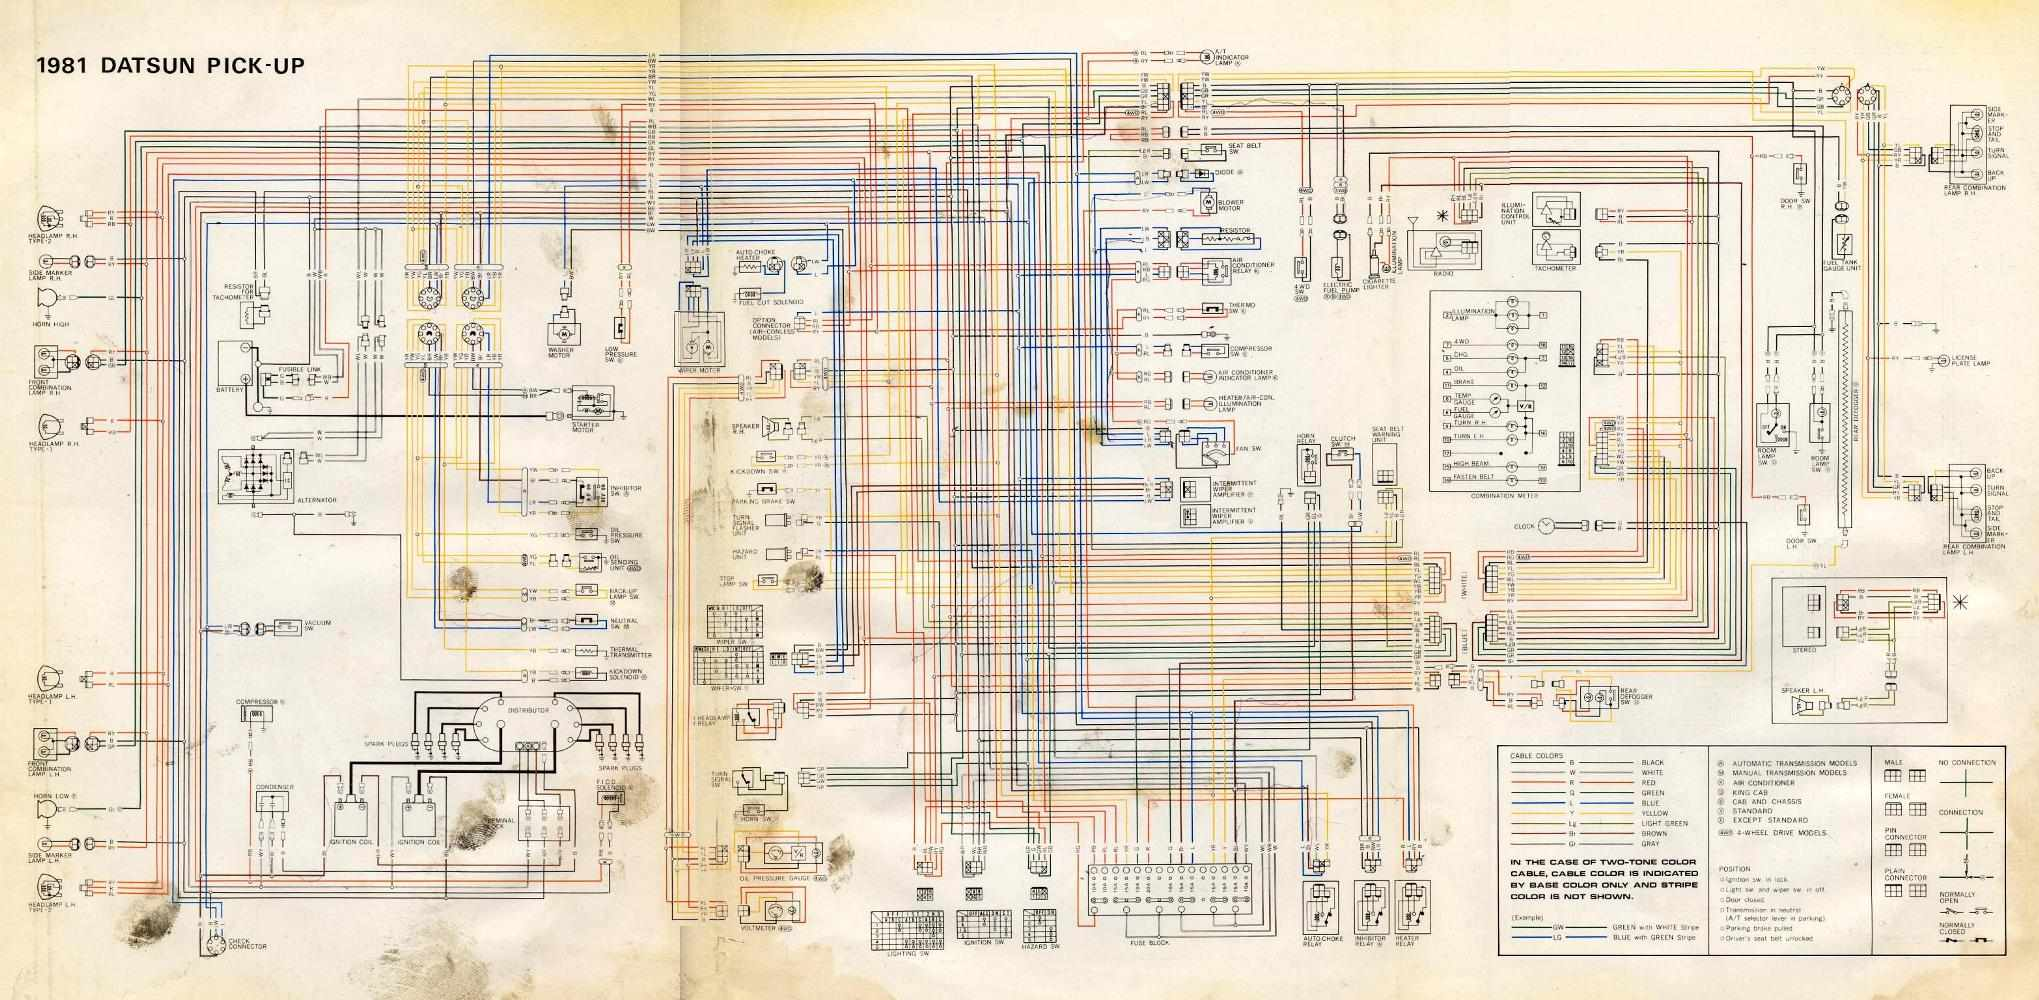 1981 Toyota Pickup Wiring Diagram - Wiring Solutions on ford wire harness repair, ford parts diagrams, ford wiring color codes, chevy s10 front diagrams, ford alternator diagrams, ford trim diagrams, ford schematics, ford electrical diagrams, ford stereo wiring, 1931 ford model a diagrams, ford distributor diagrams, ford hvac diagram, ford exploded view diagrams, ford wiring parts, ford wire diagrams, ford engine diagrams, ford maintenance schedule, ford wiring harness, ford regulator diagram, ford relay diagrams,